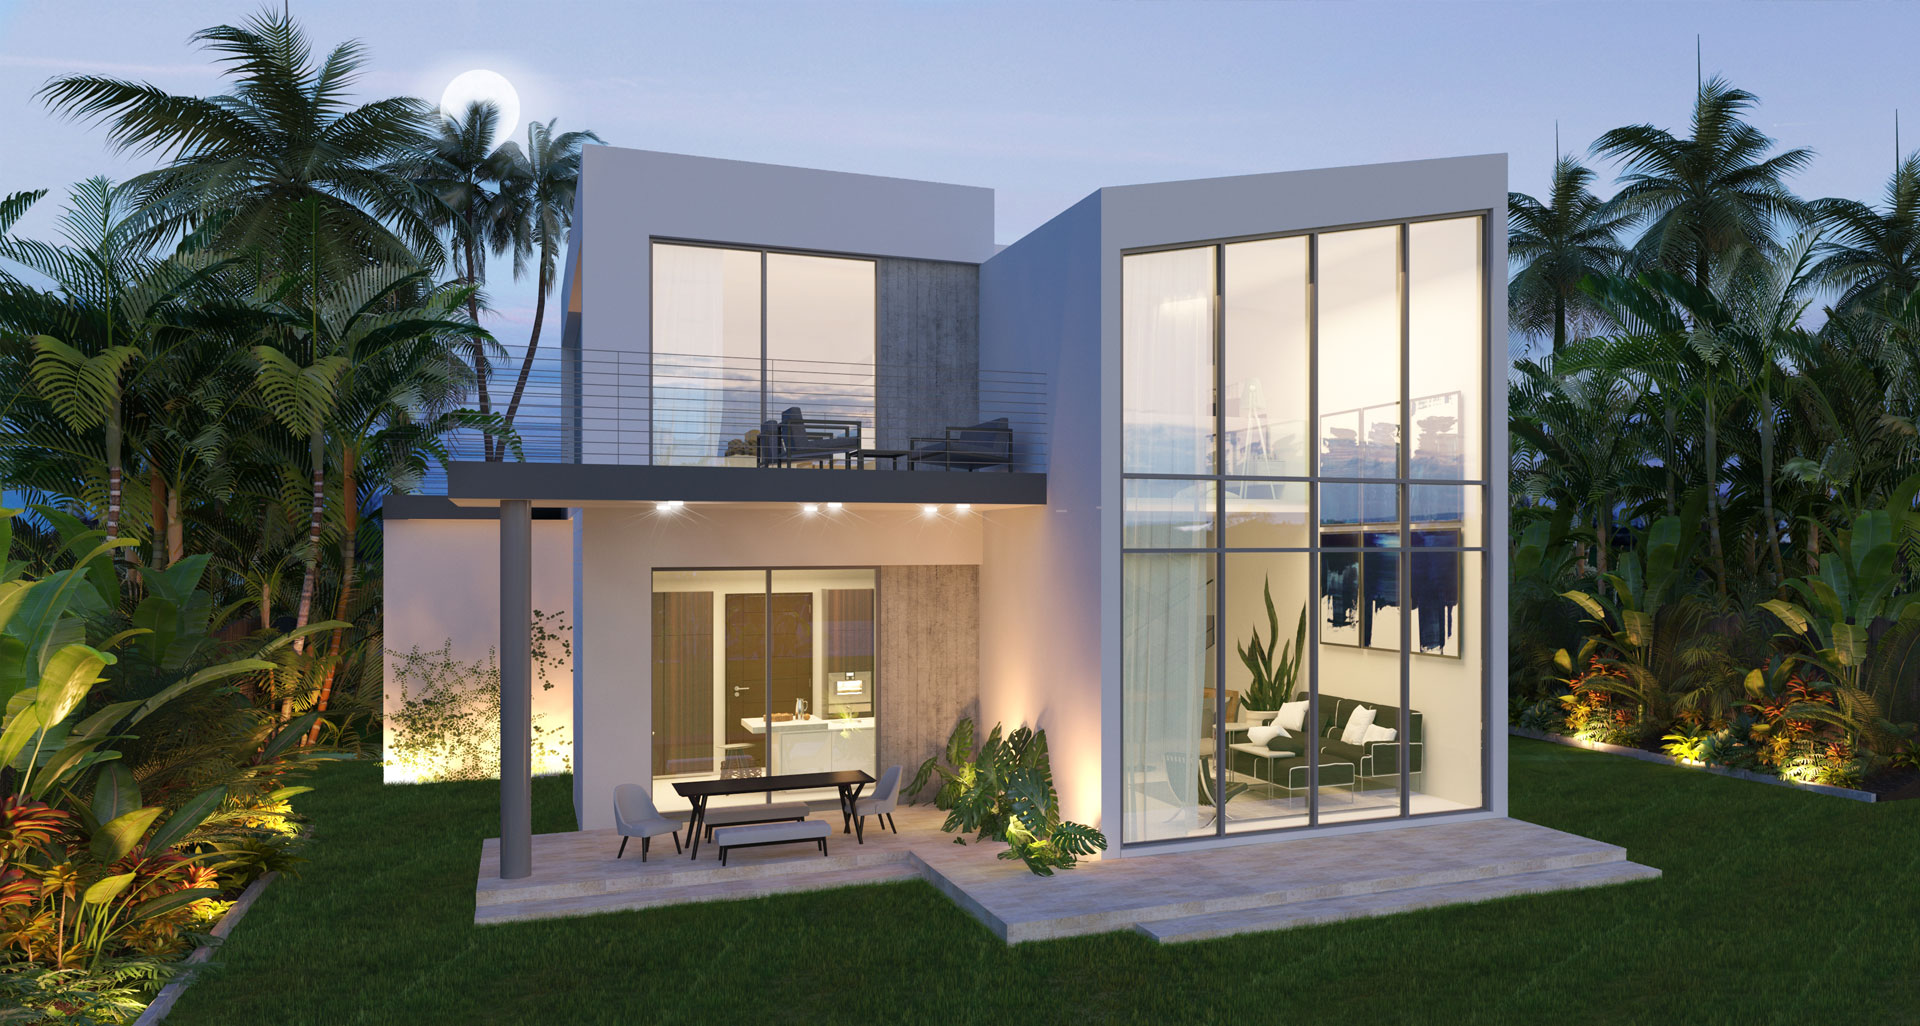 Exterior view of the architecture project at Guam 3 Unit Complex